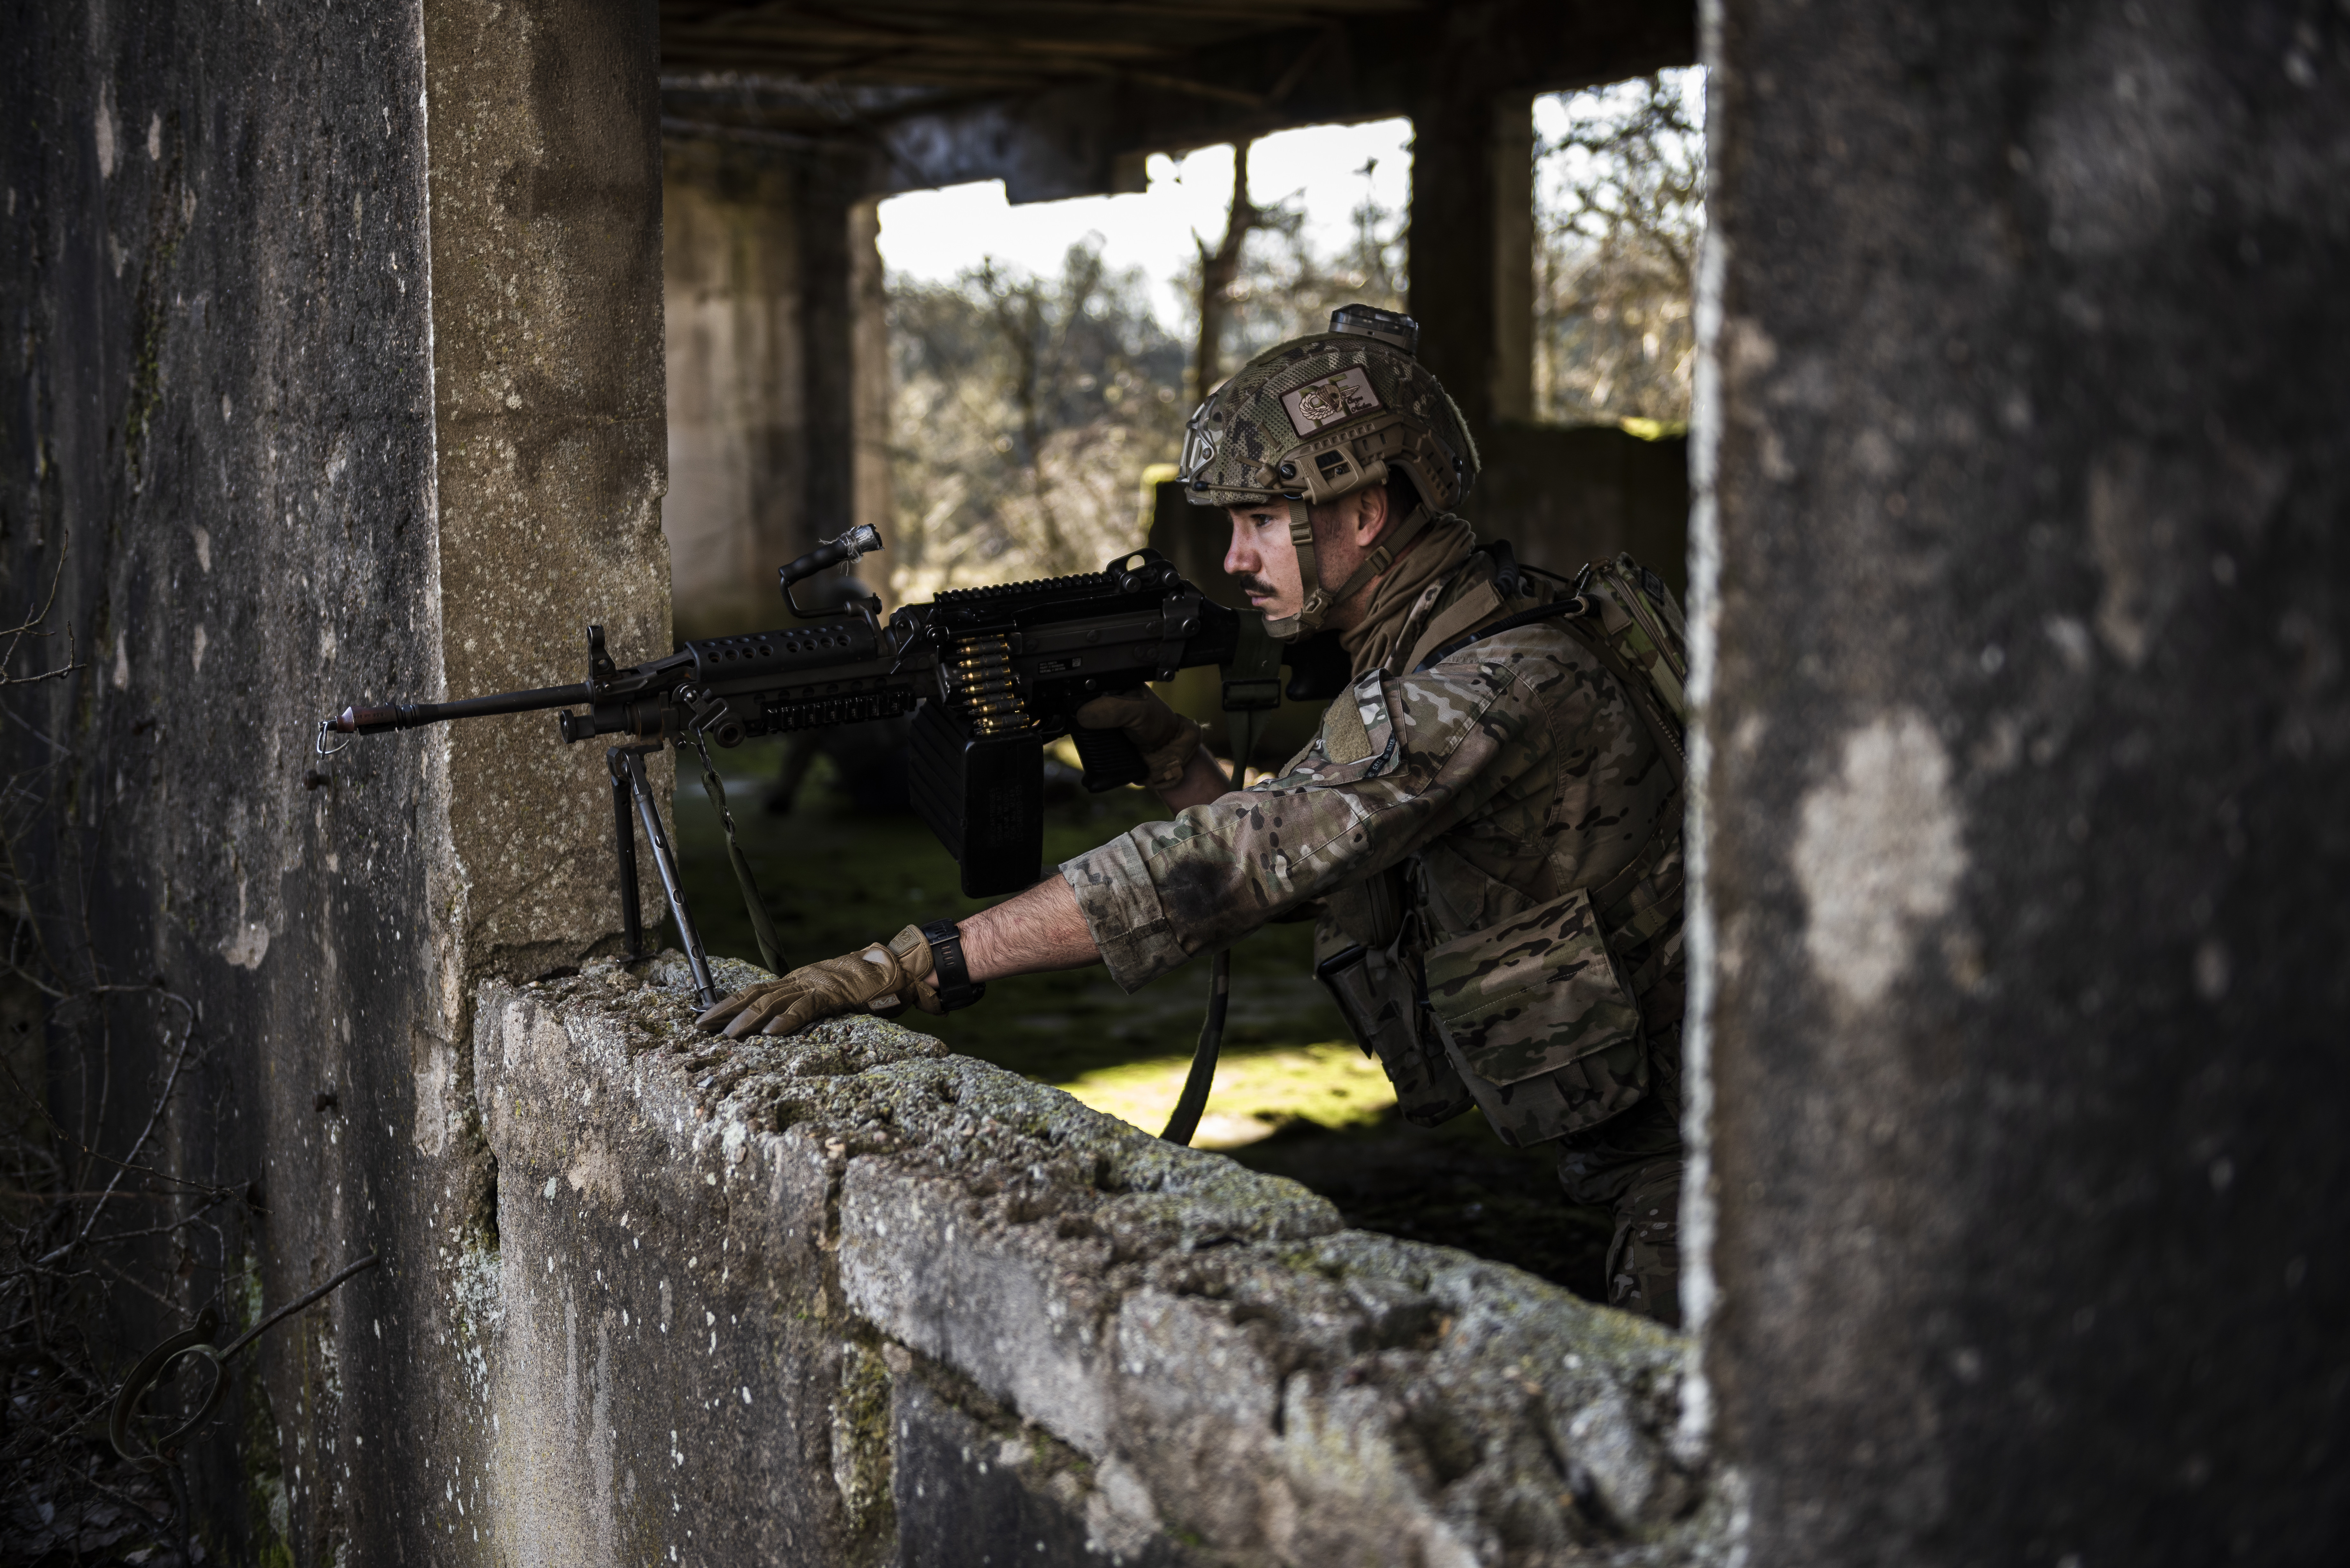 Staff Sgt. Dwight Stalter, 435th Security Forces Squadron contingency response team leader, holds security during exercise Frozen Defender in Grostenquin, France, Jan. 16, 2020. (Staff Sgt. Devin Nothstine/Air Force)